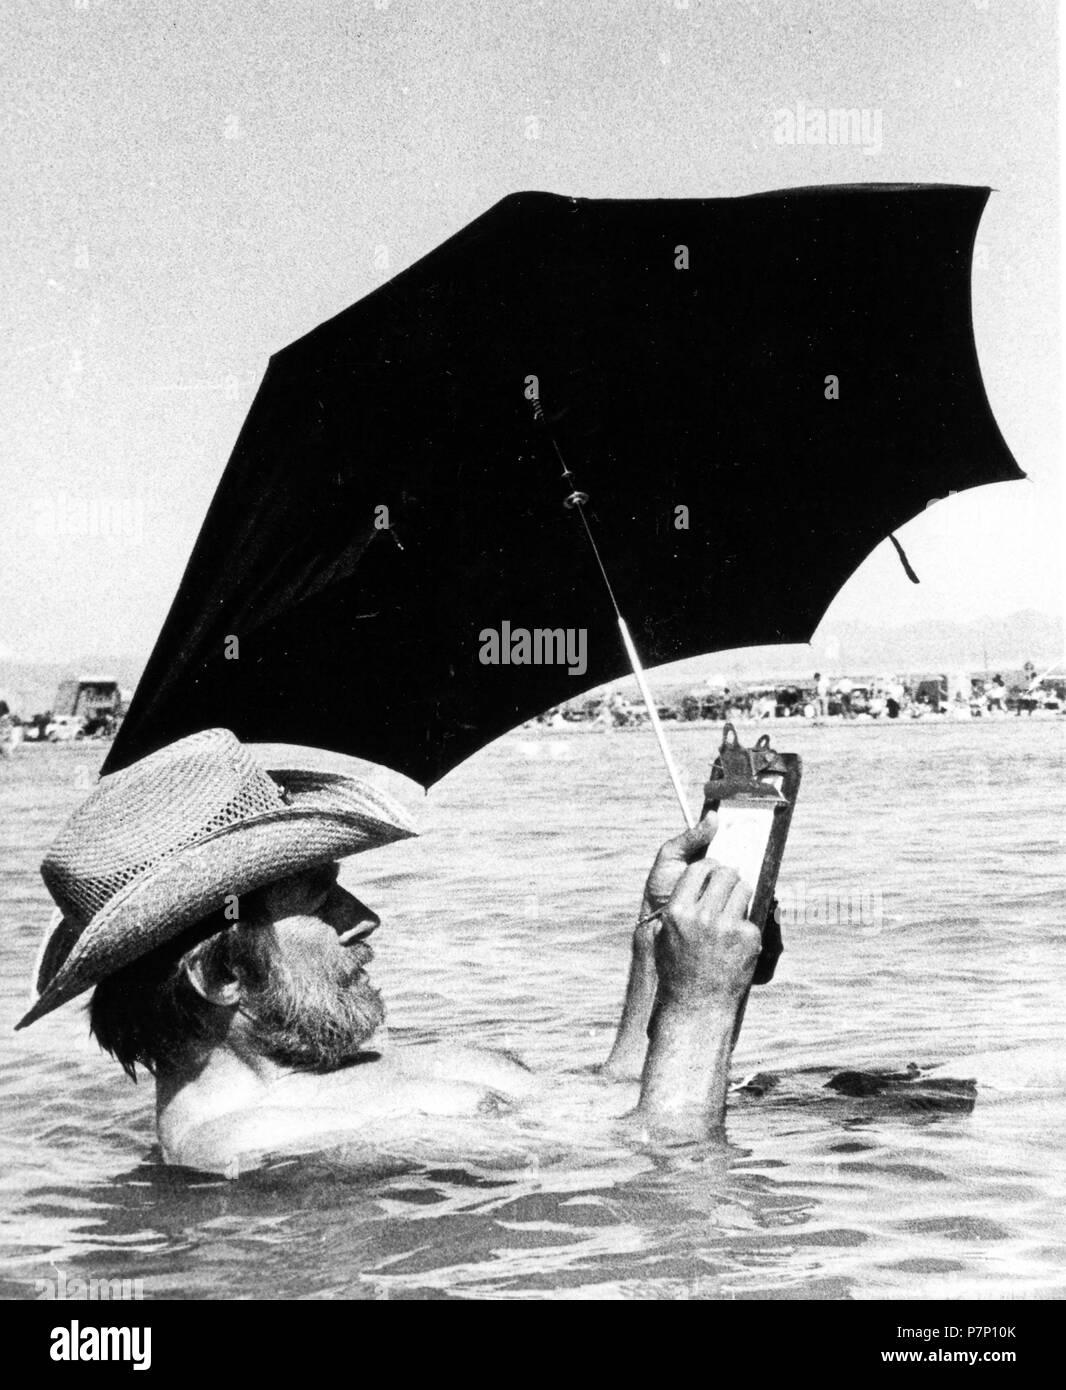 Man with parasol in water, Mexico City, Mexico - Stock Image